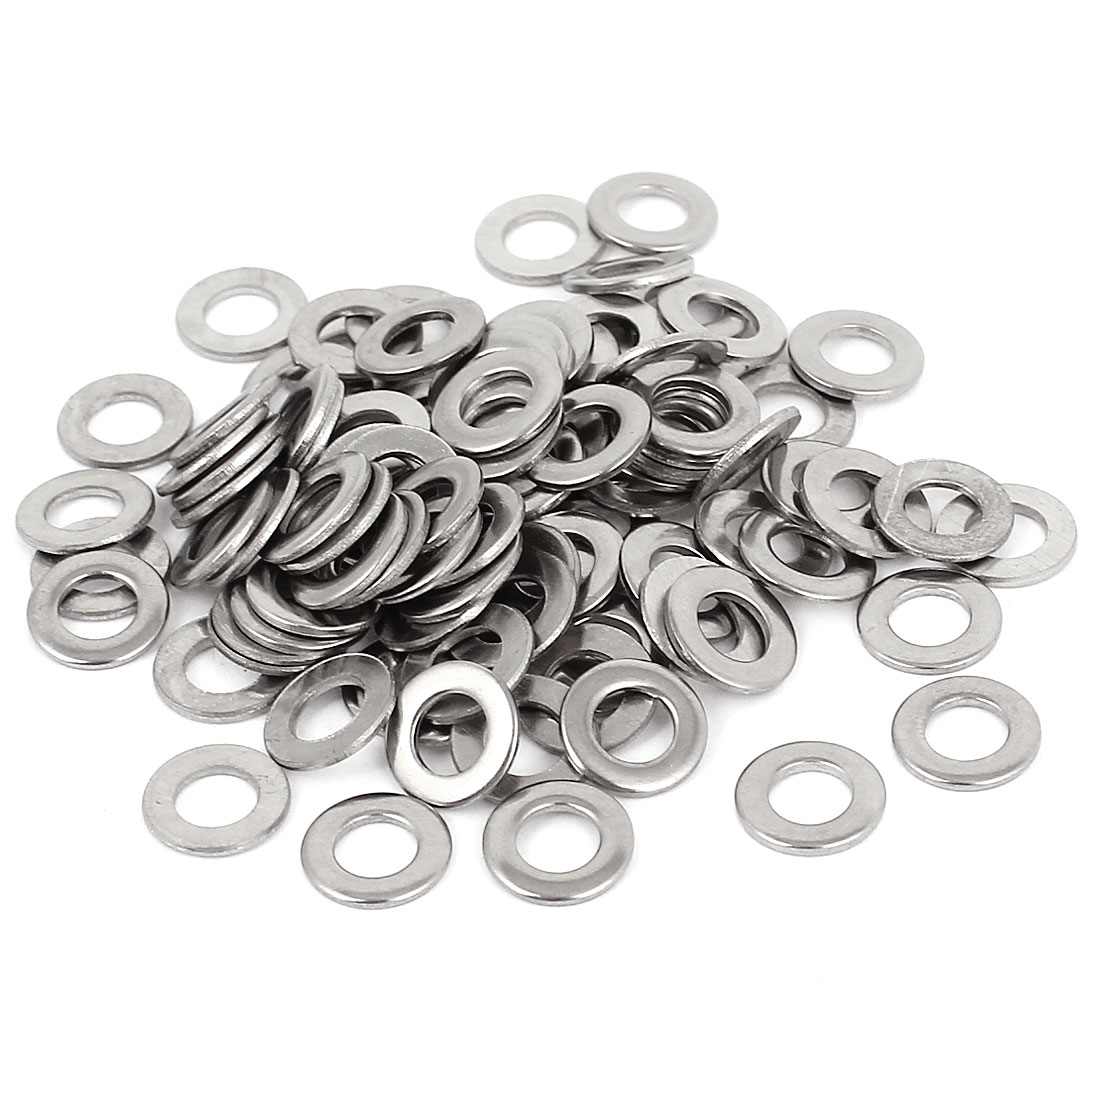 "100pcs Silver Tone 316 Stainless Steel Flat Washer 3/16"" for Screws Bolts"